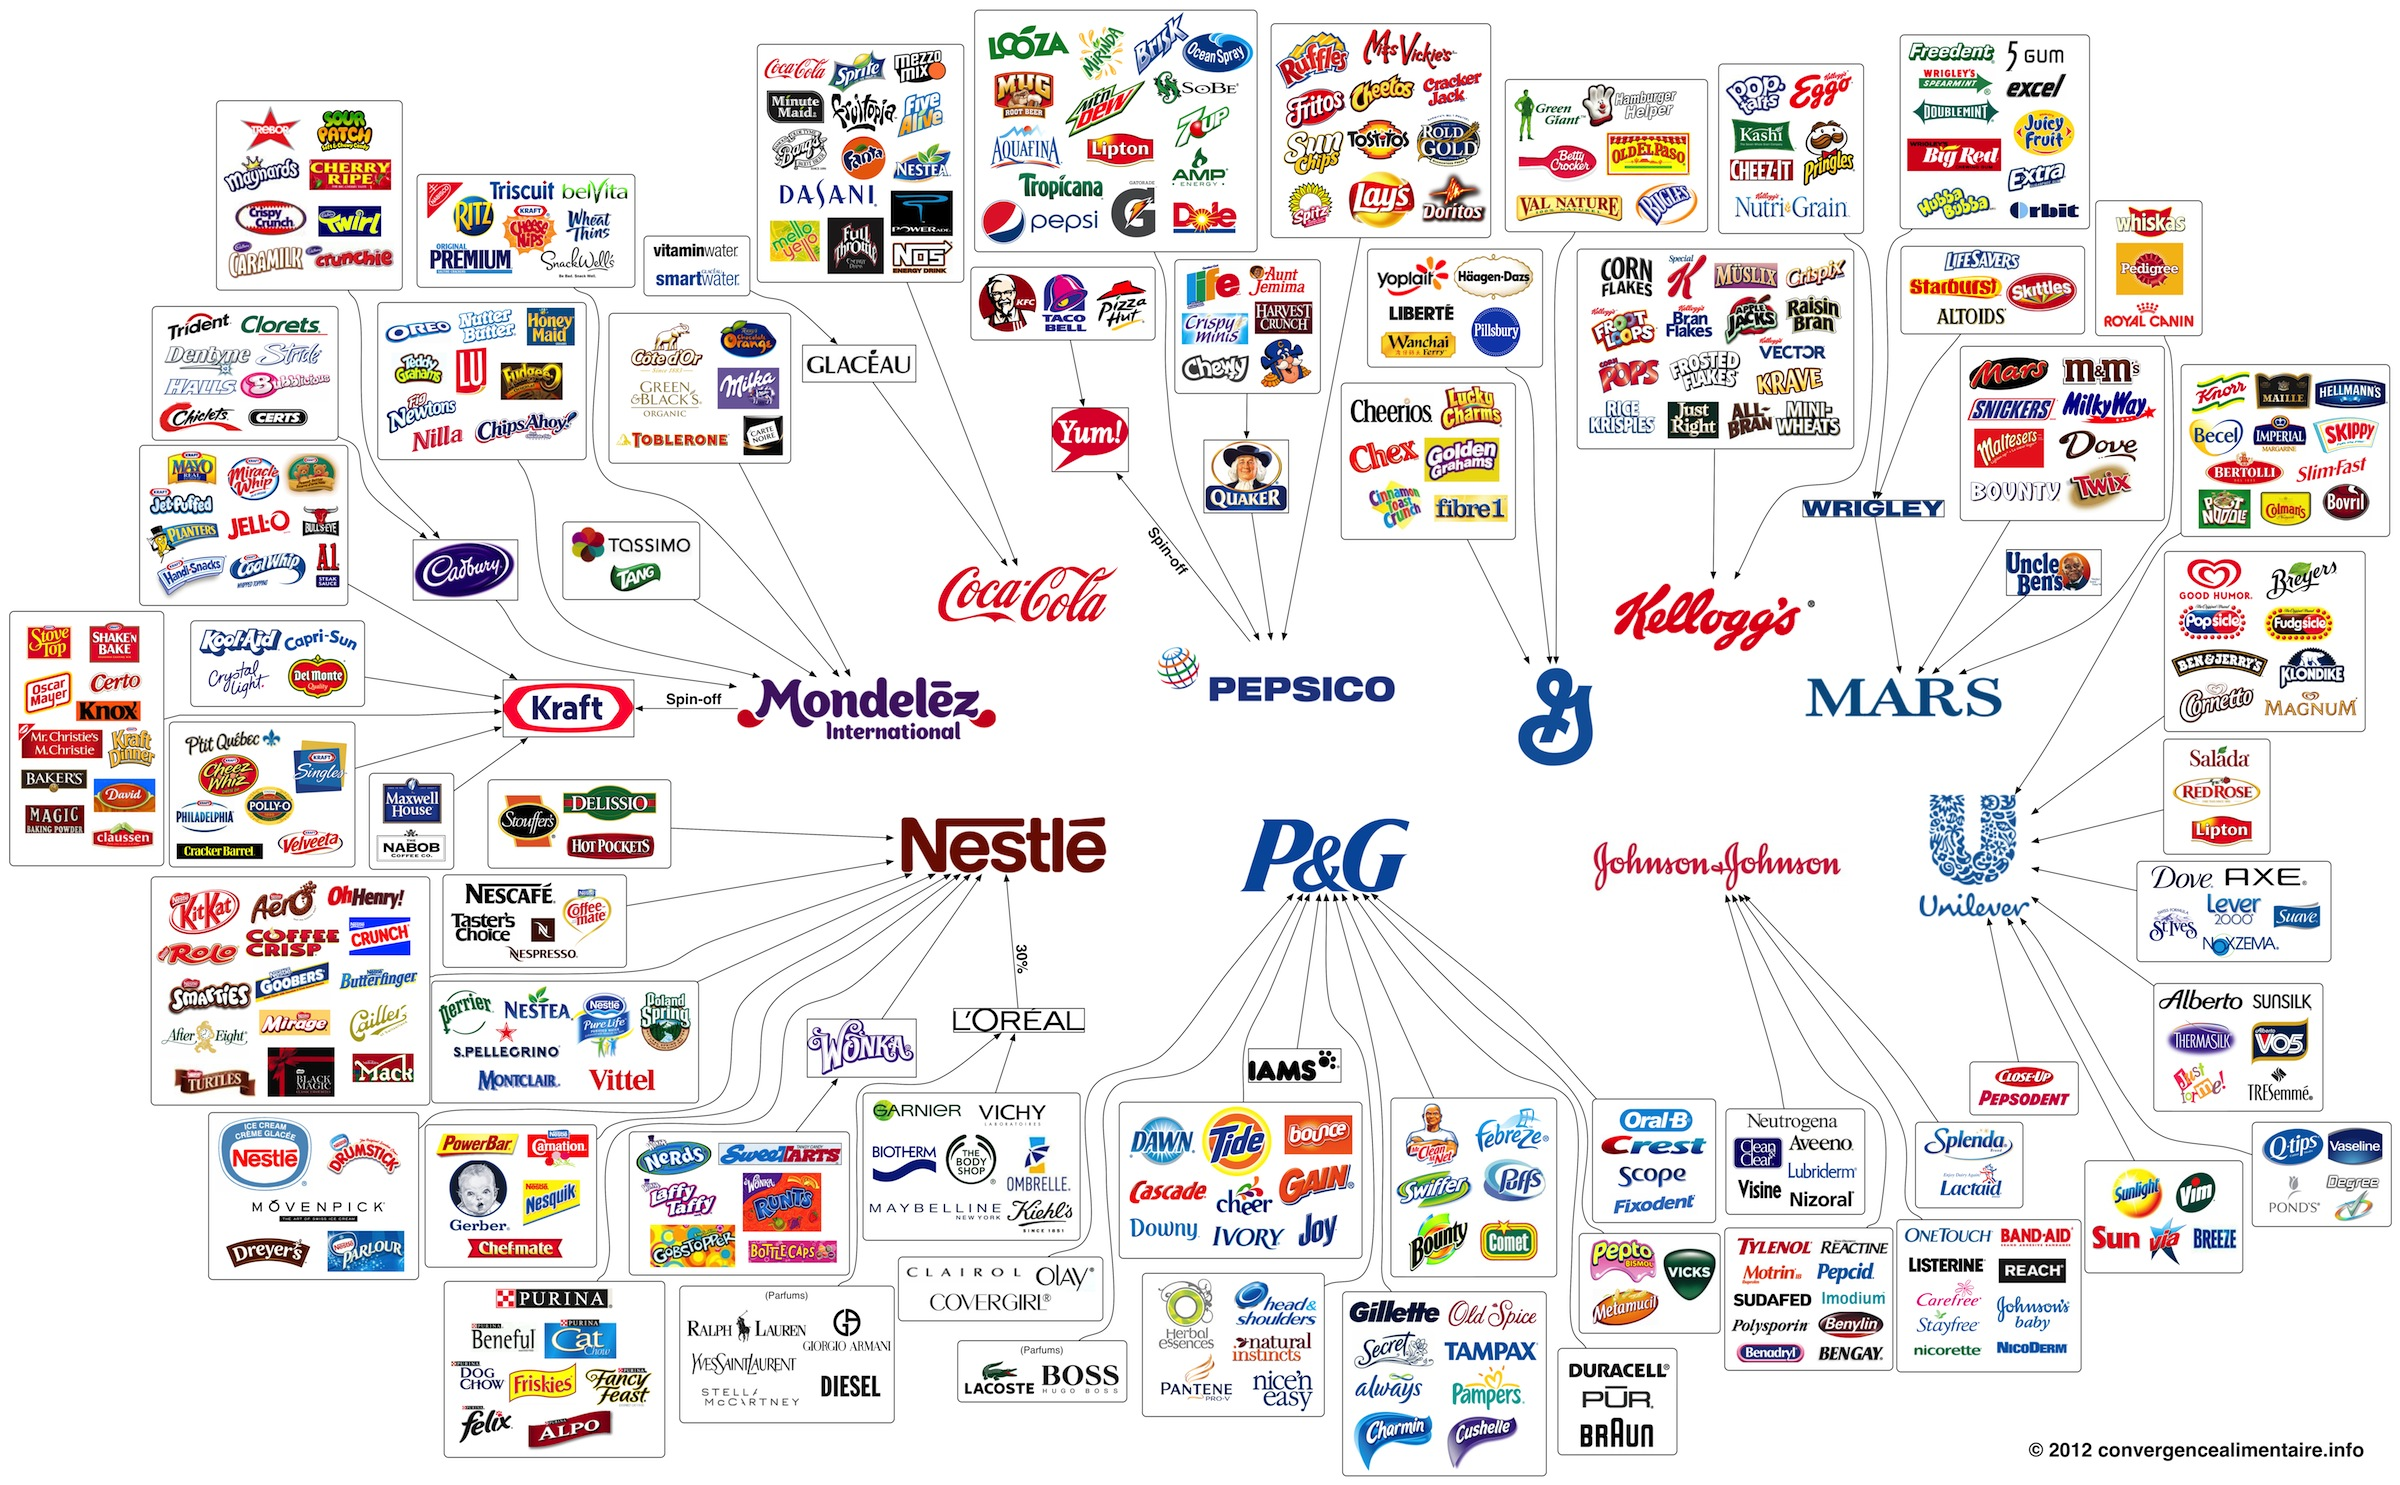 who owns who